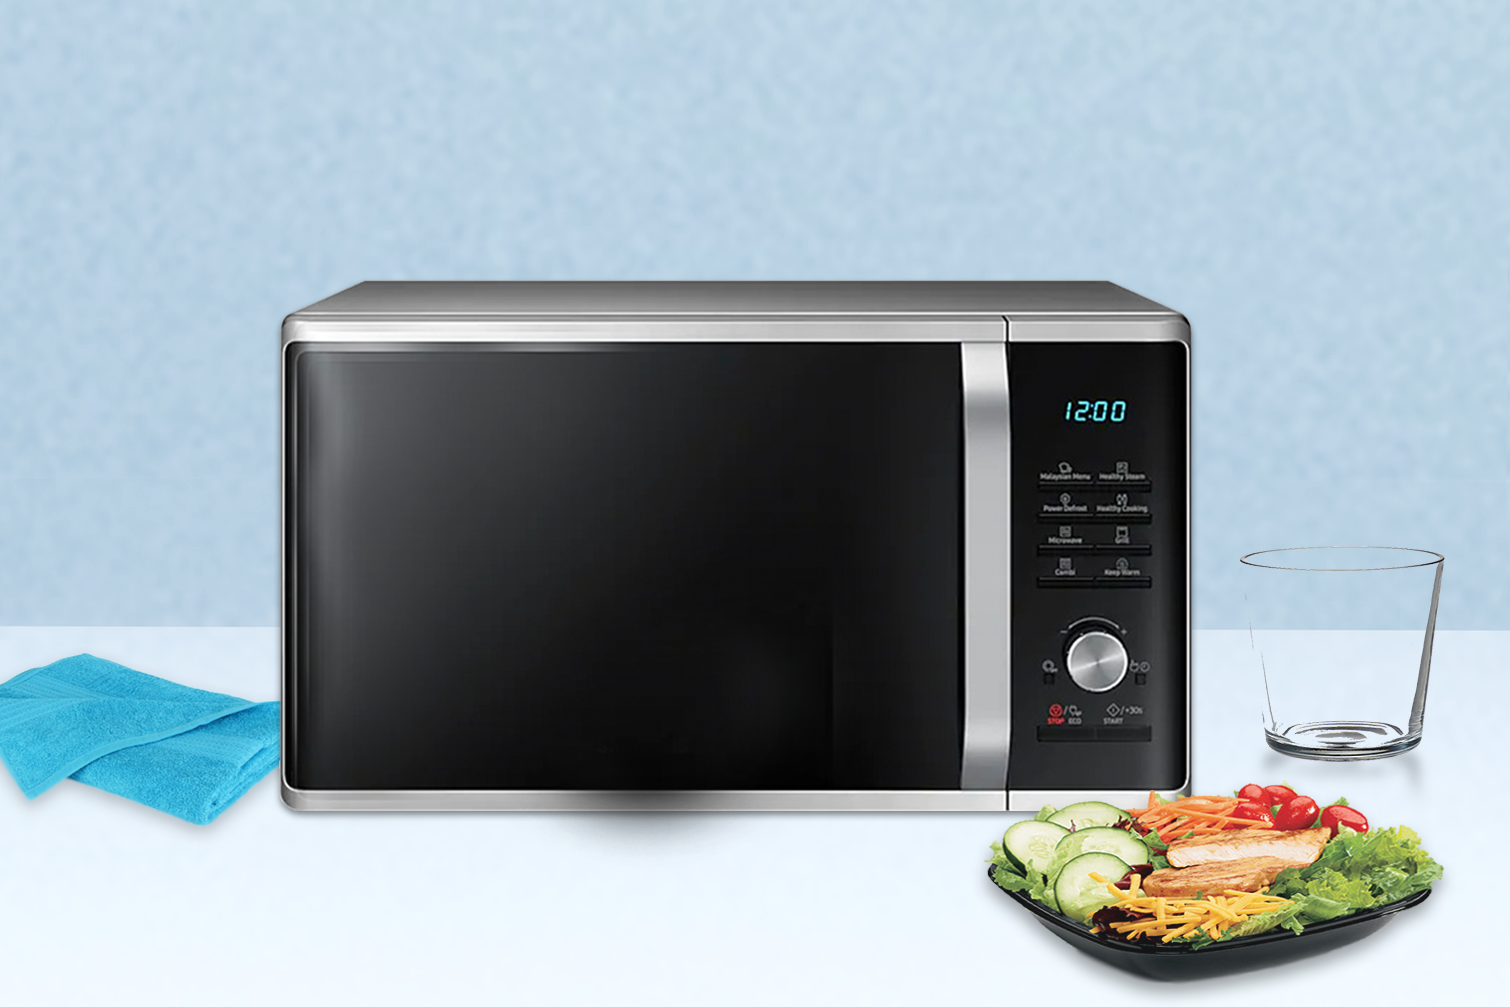 TR Microwave Oven